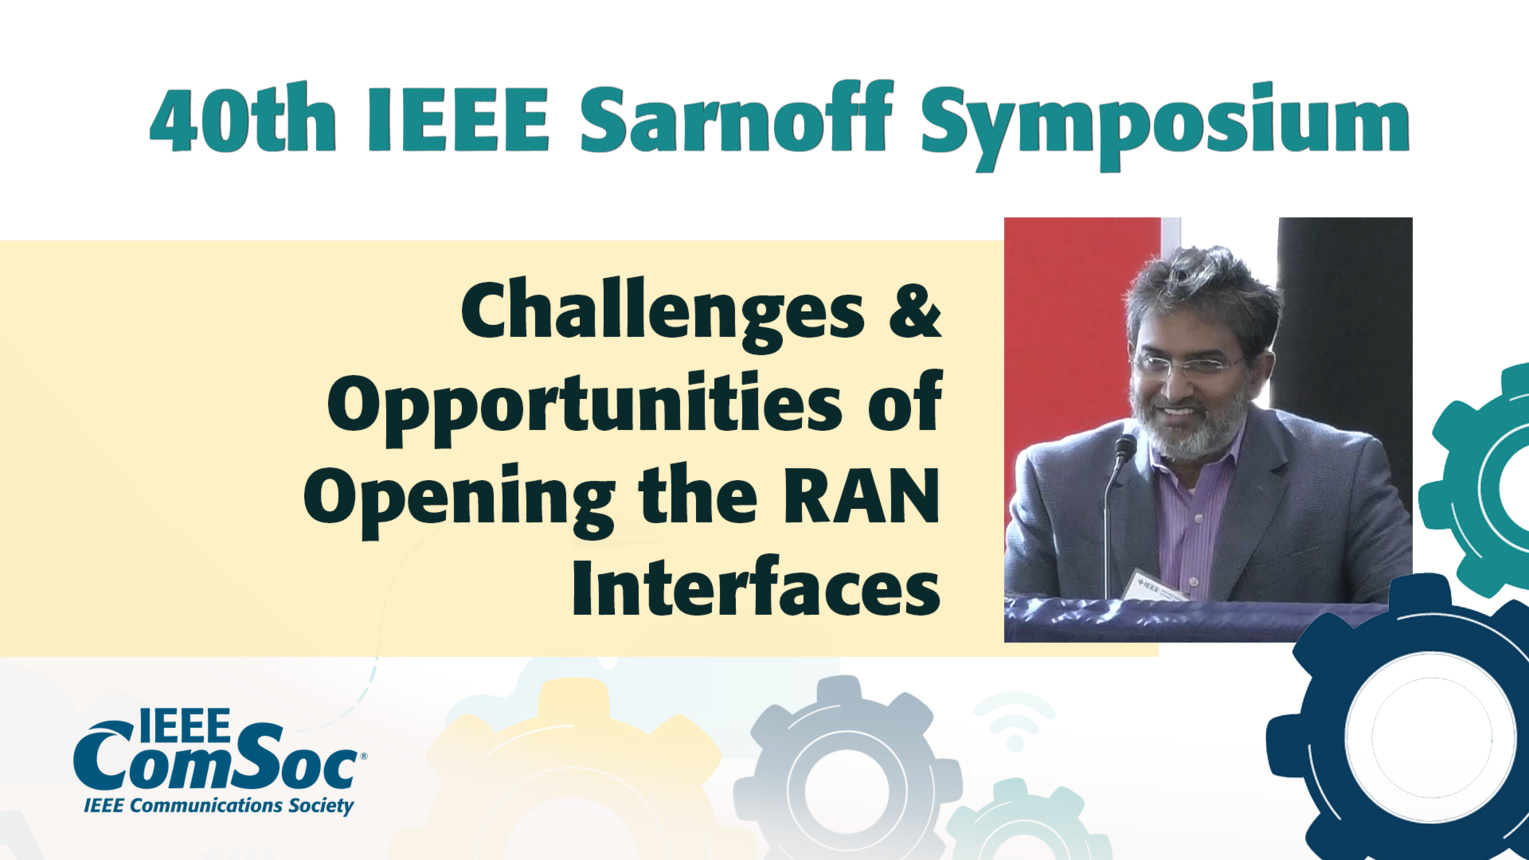 Challenges & Opportunities of Opening the RAN Interfaces - Haseeb Akhtar - IEEE Sarnoff Symposium, 2019